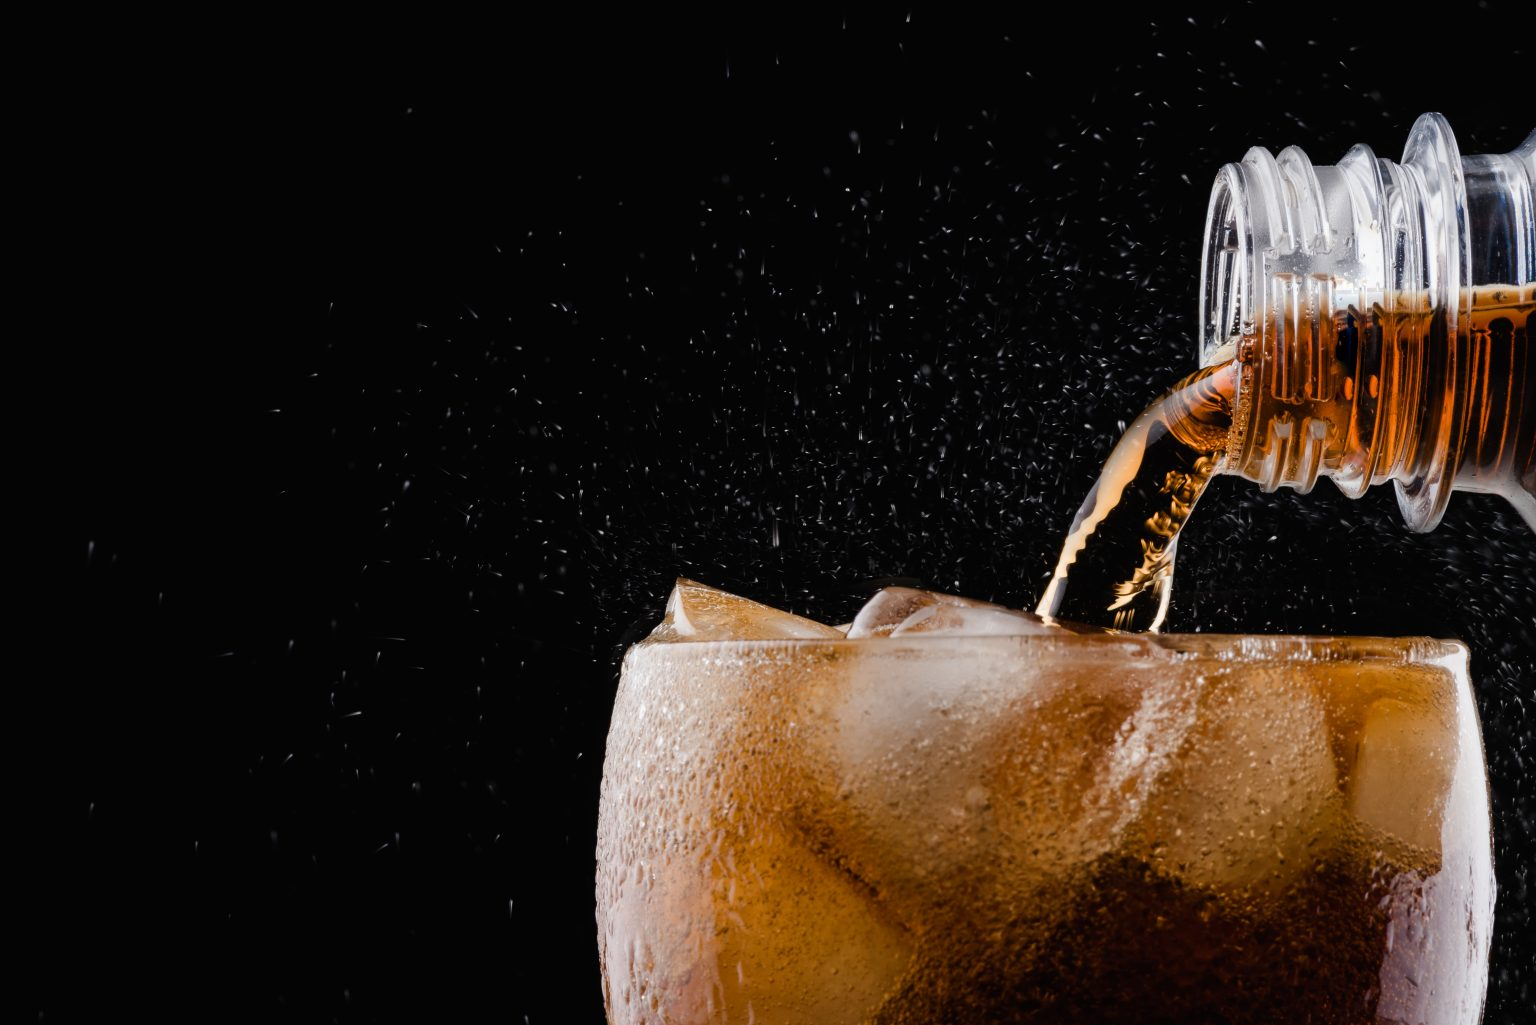 Dr. Ananya Awasthi discusses why do need a campaign for soda tax to improve public health